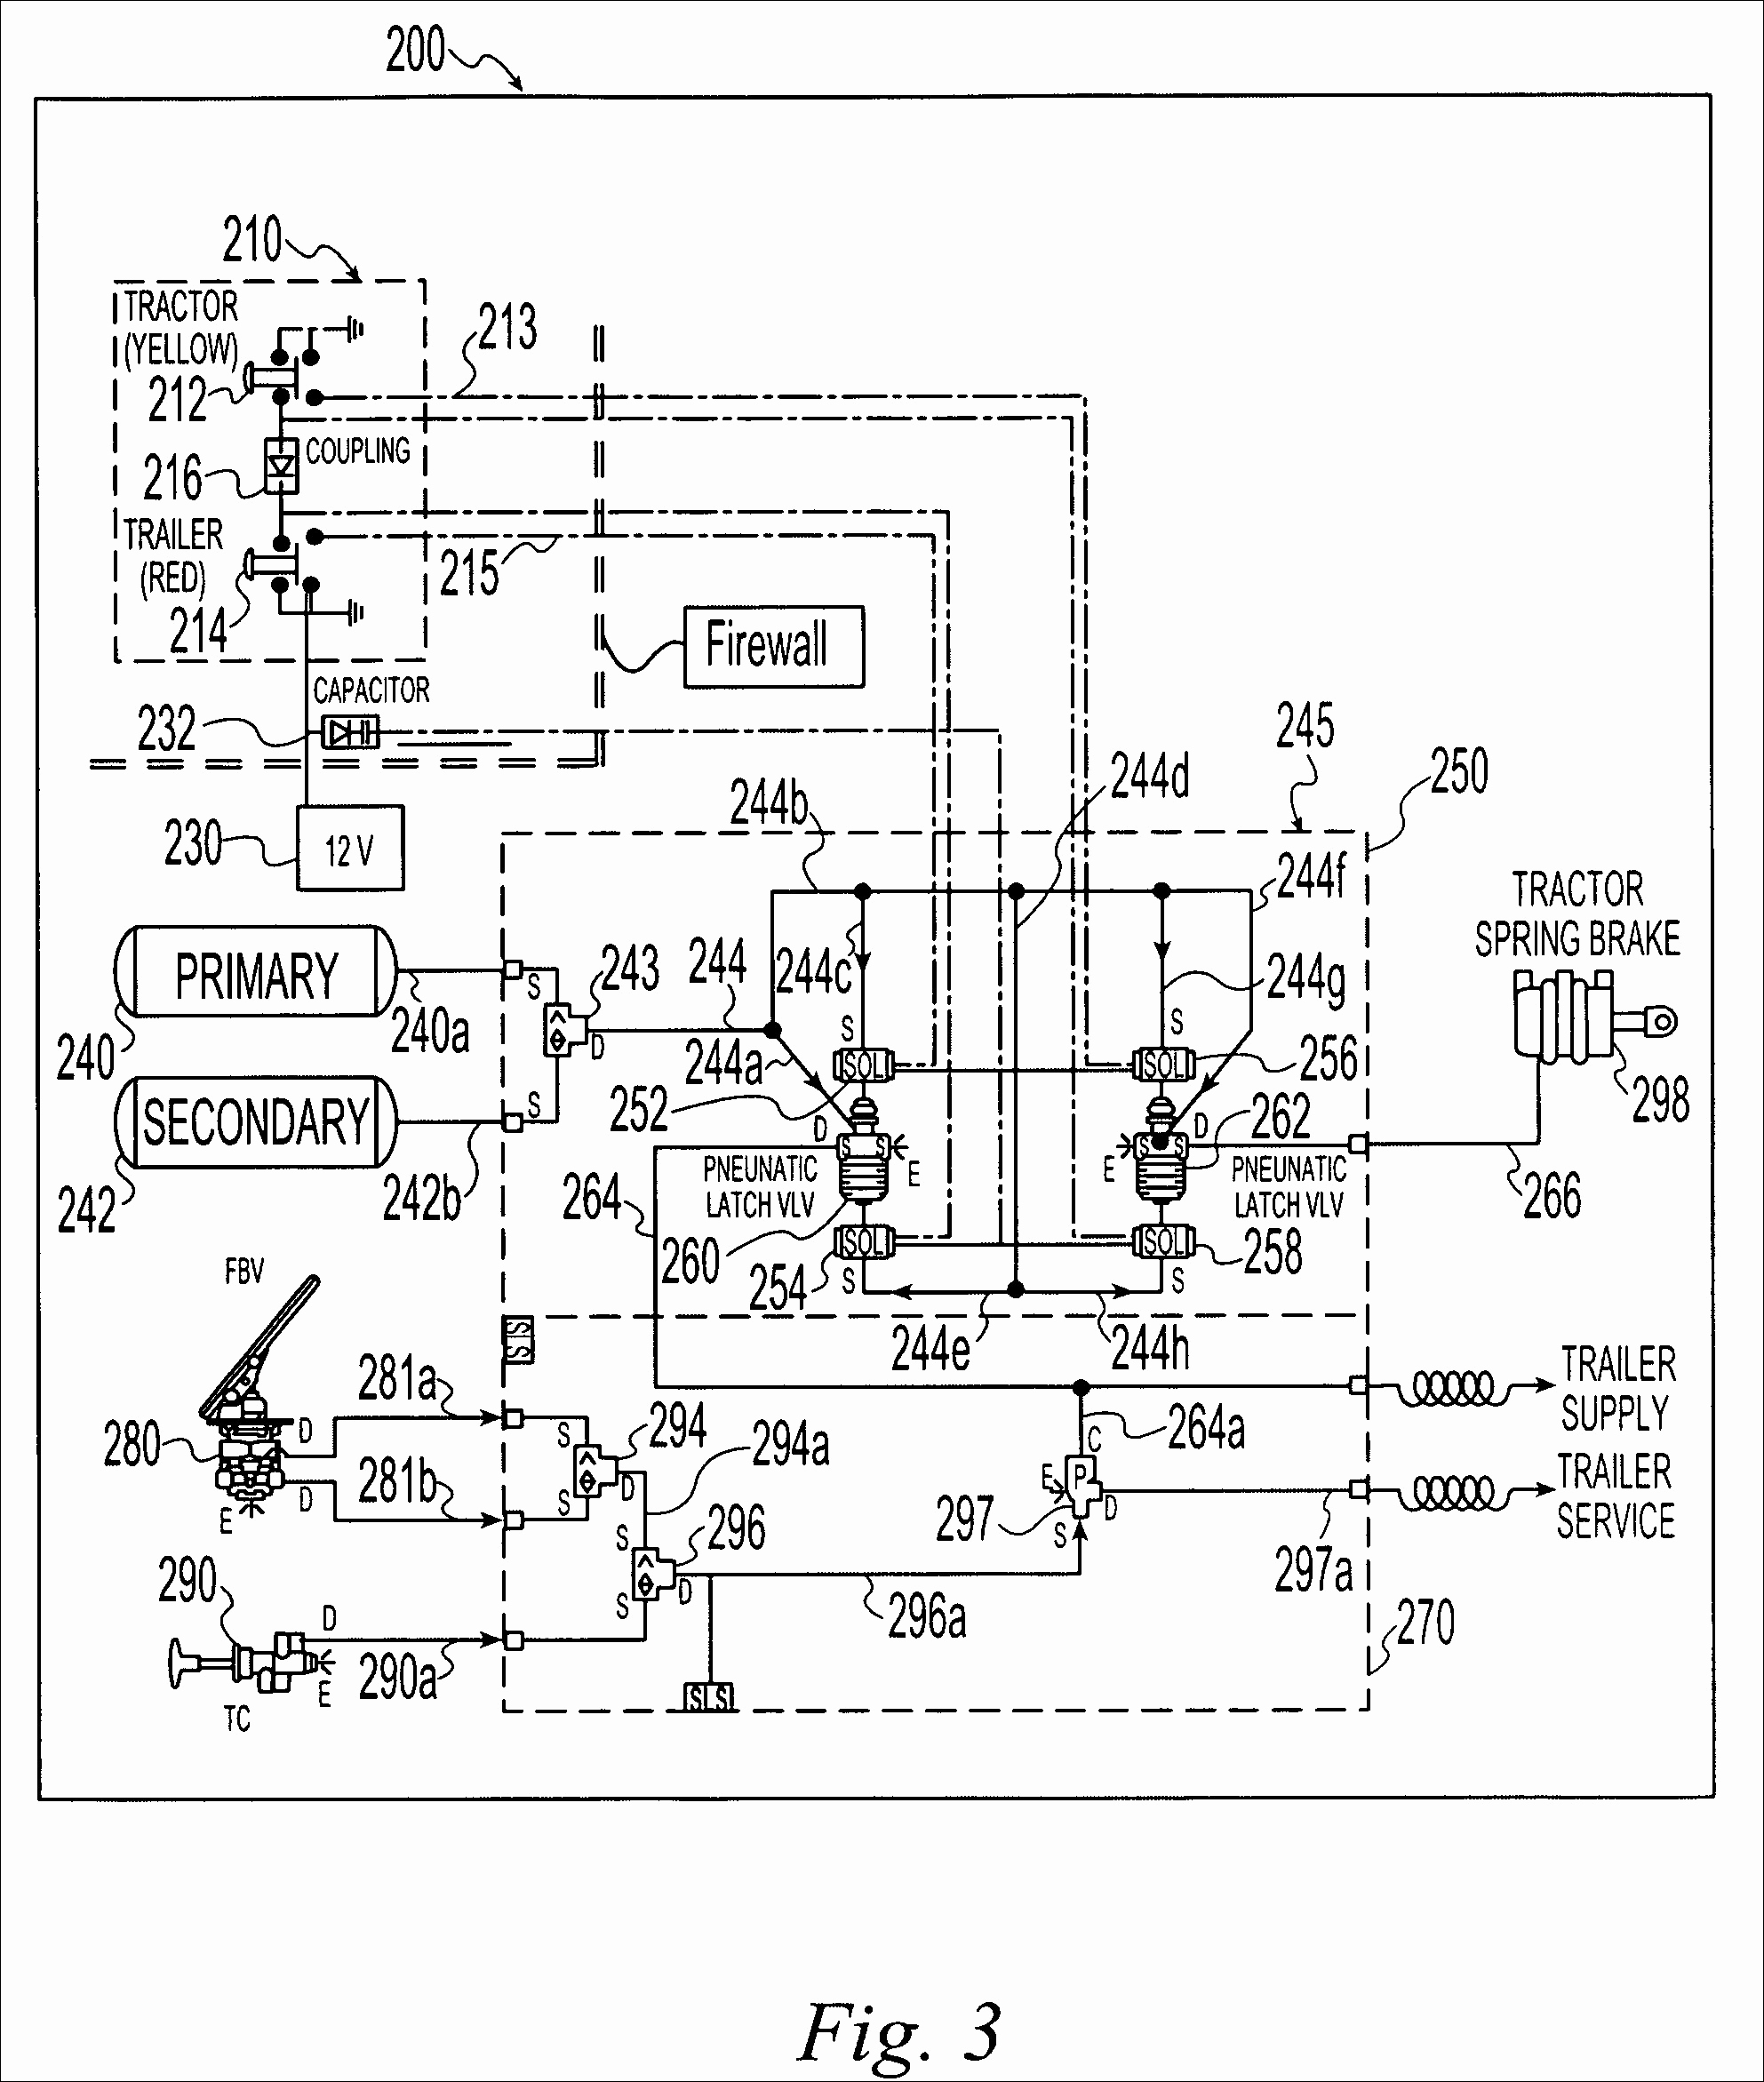 Chevy Wiring Diagram For Trailer : 2009 chevy silverado trailer wiring diagram gallery ~ A.2002-acura-tl-radio.info Haus und Dekorationen